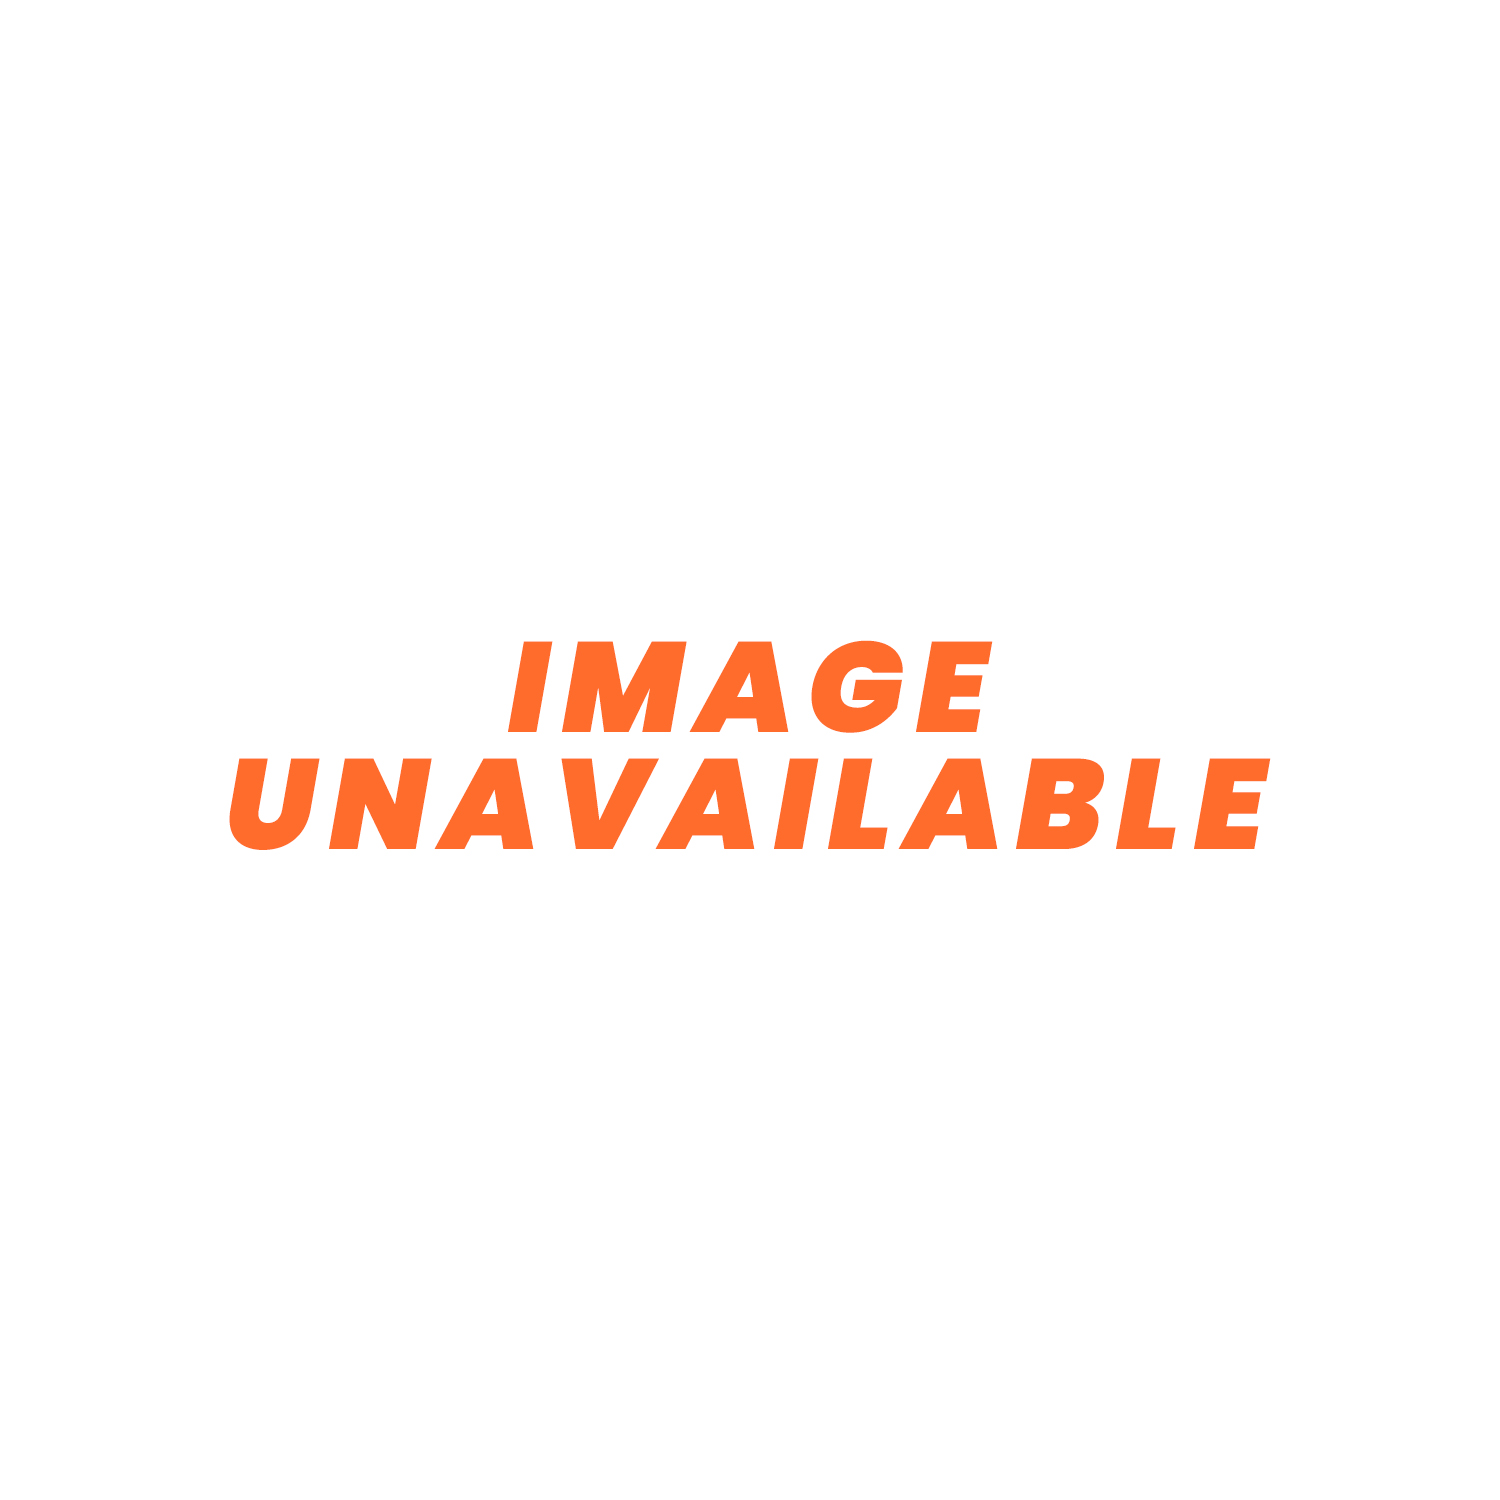 Adhesive Gold Reflective Heat Barrier Sheet 12 x 12""